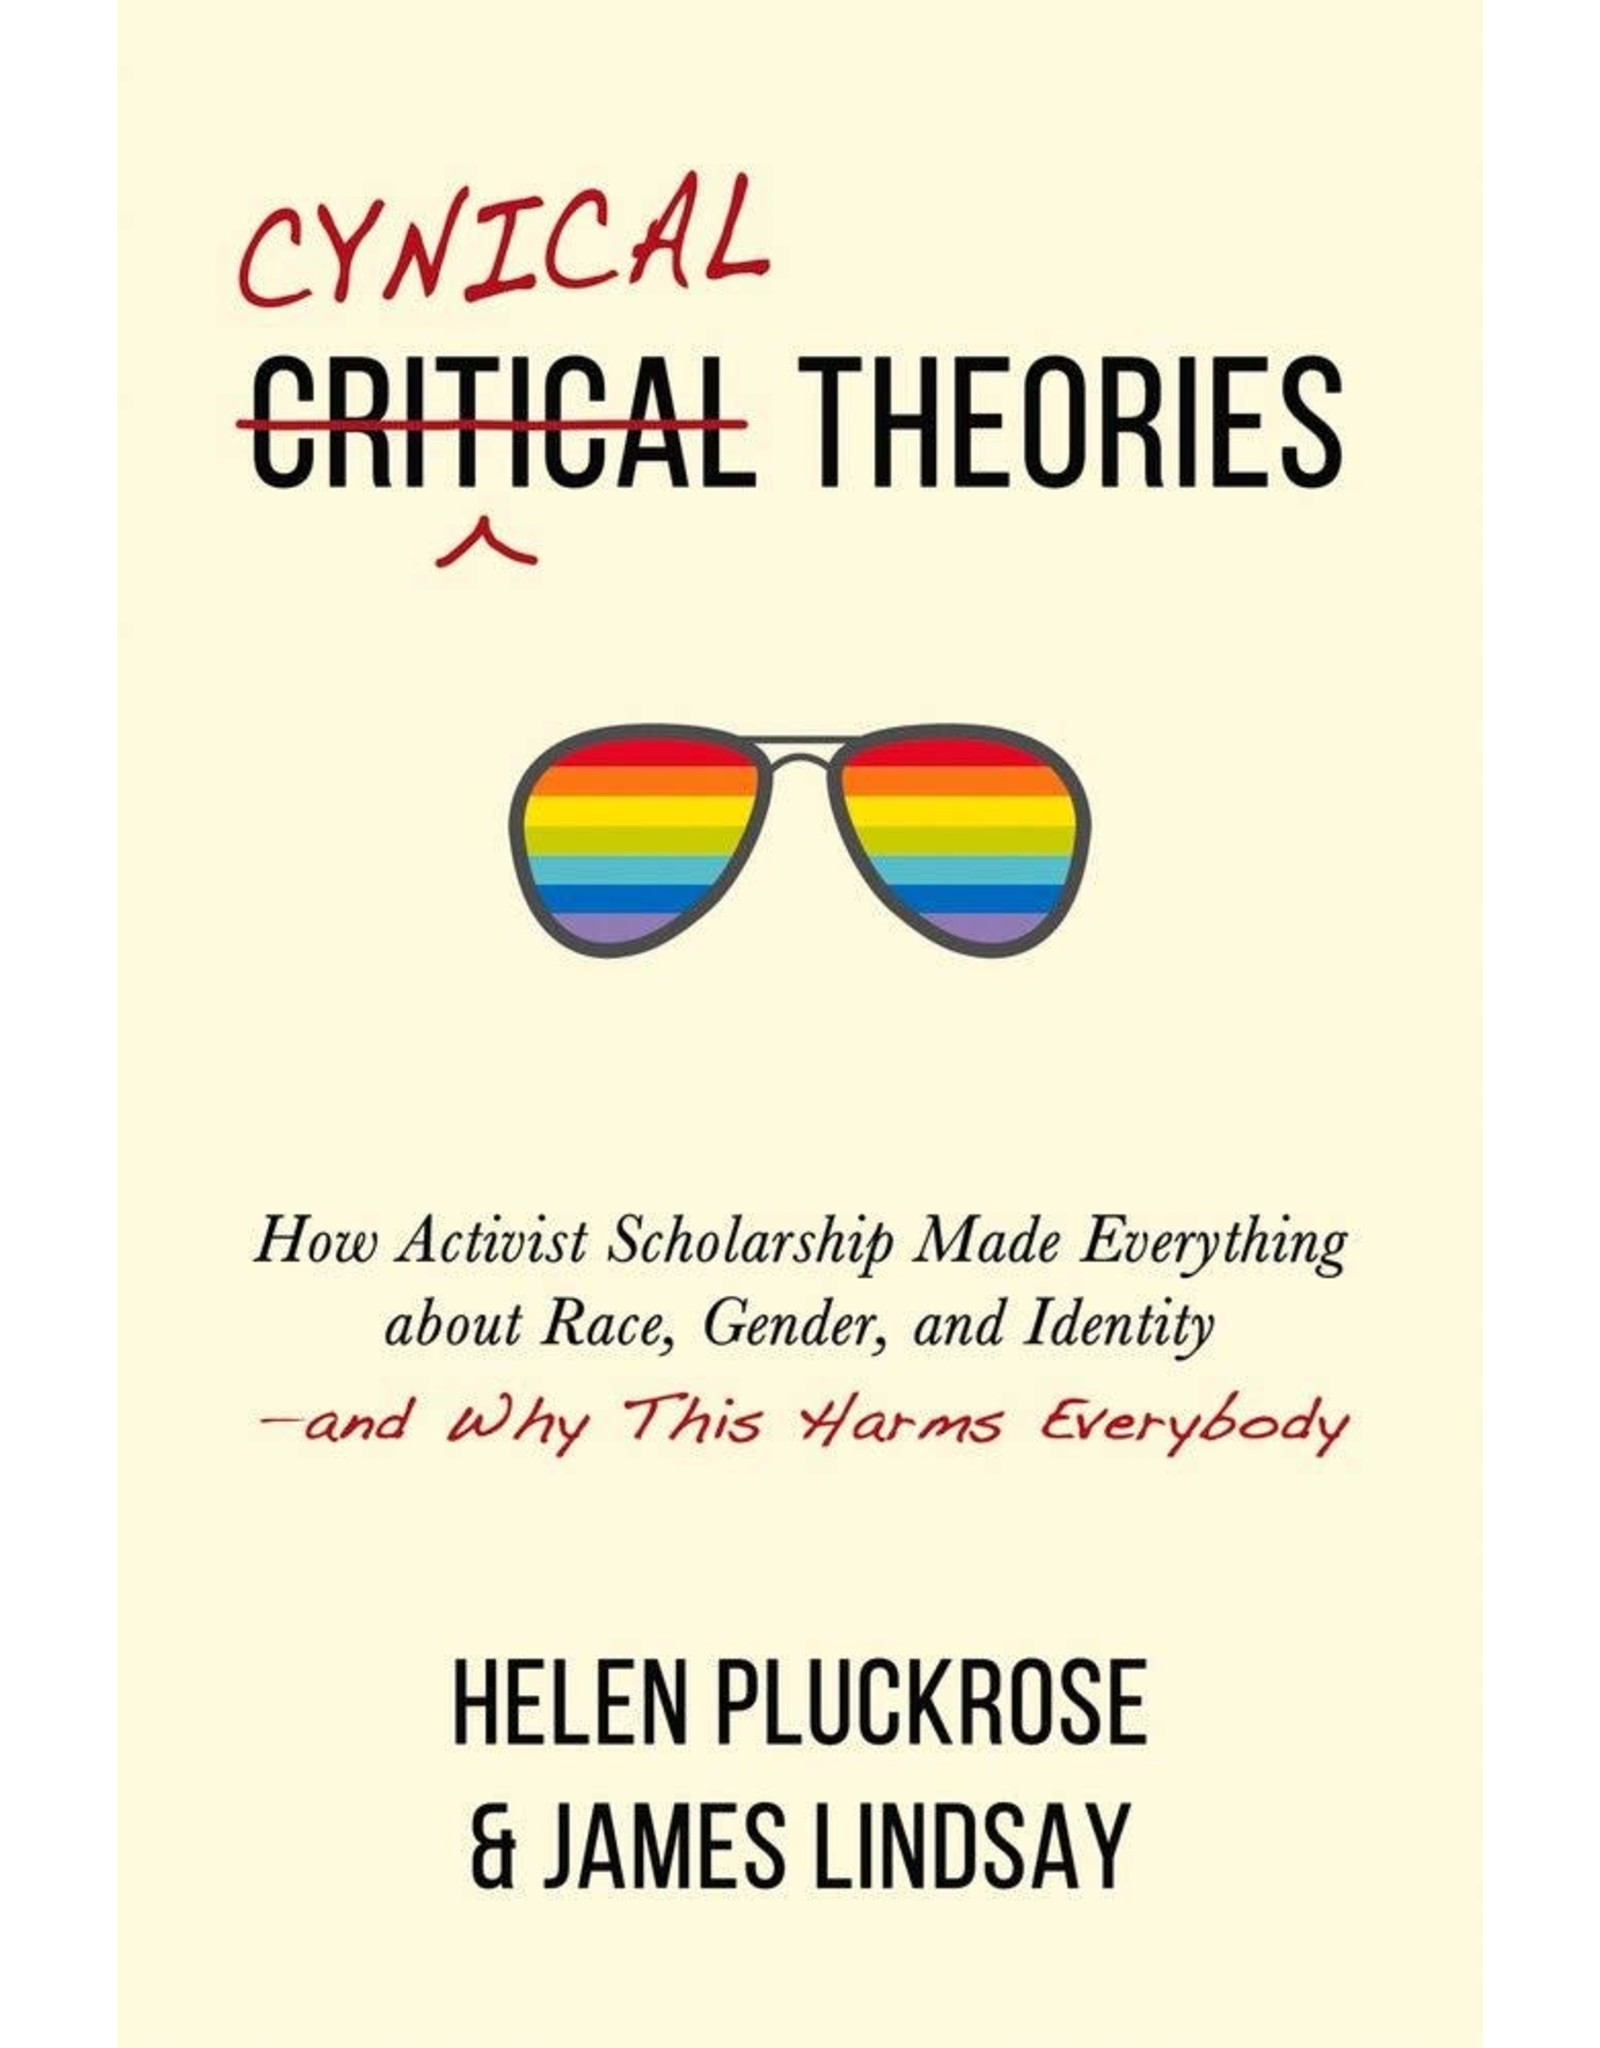 Cynical Theories: How Activist Scholarship Made Everything about Race, Gender, and Identity